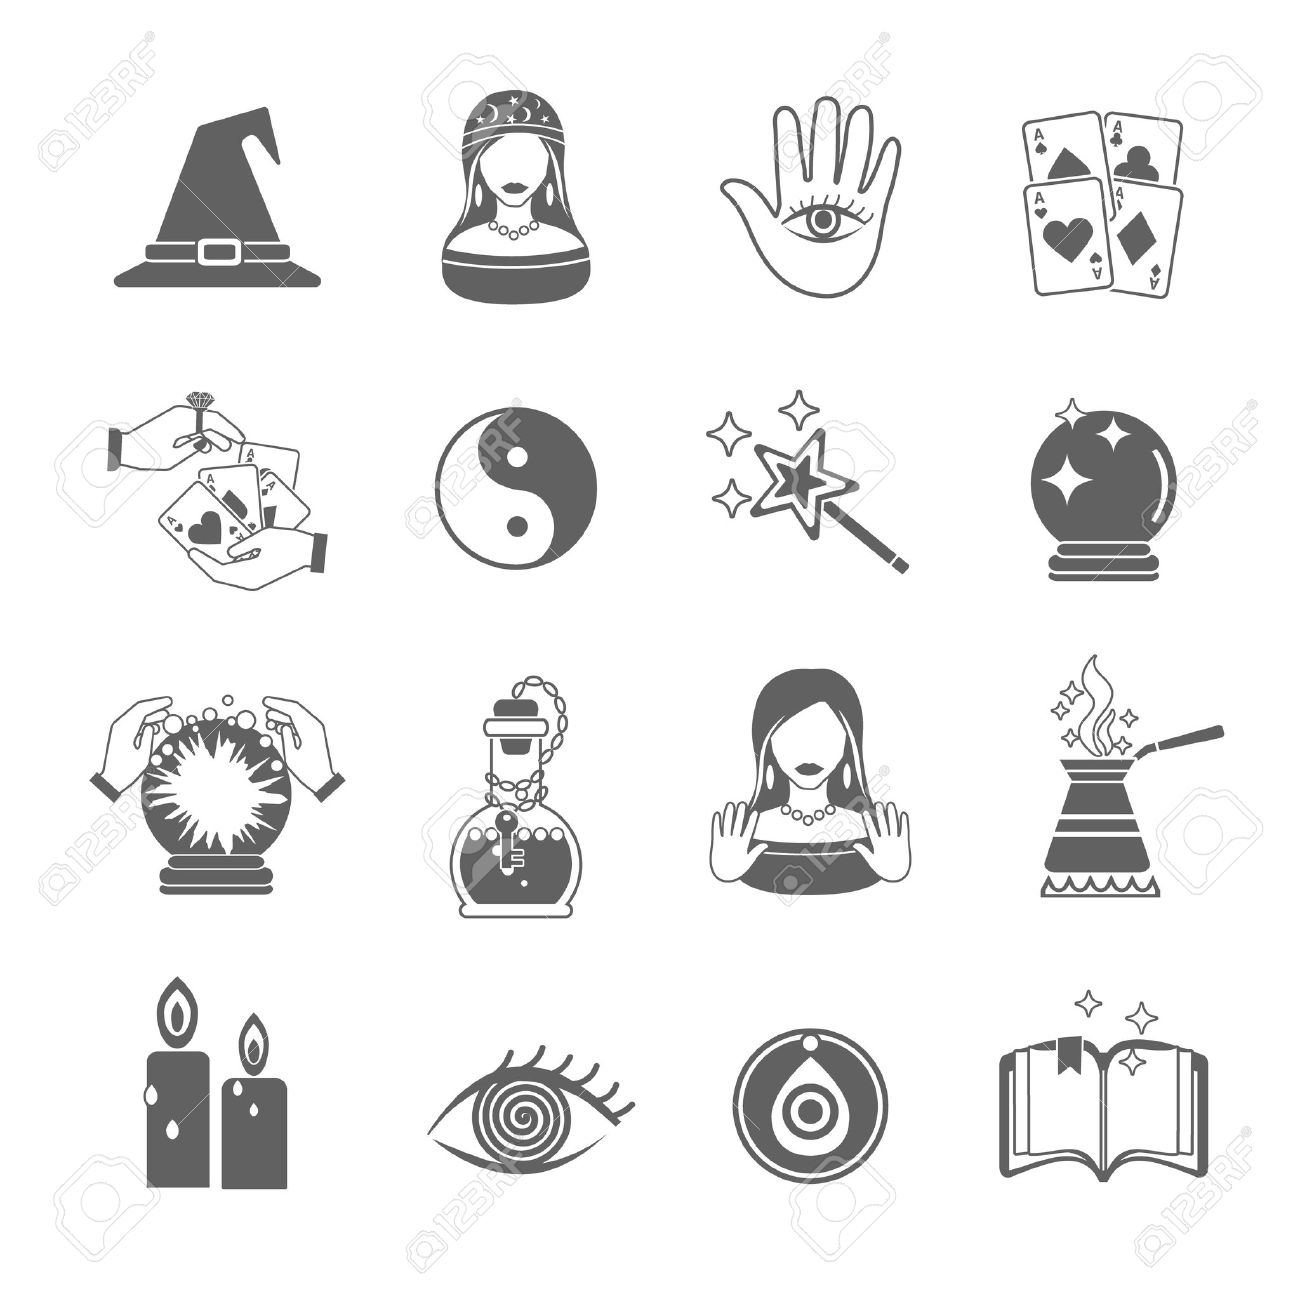 Fortune and future teller black icon set with magic symbols fortune and future teller black icon set with magic symbols isolated vector illustration stock vector buycottarizona